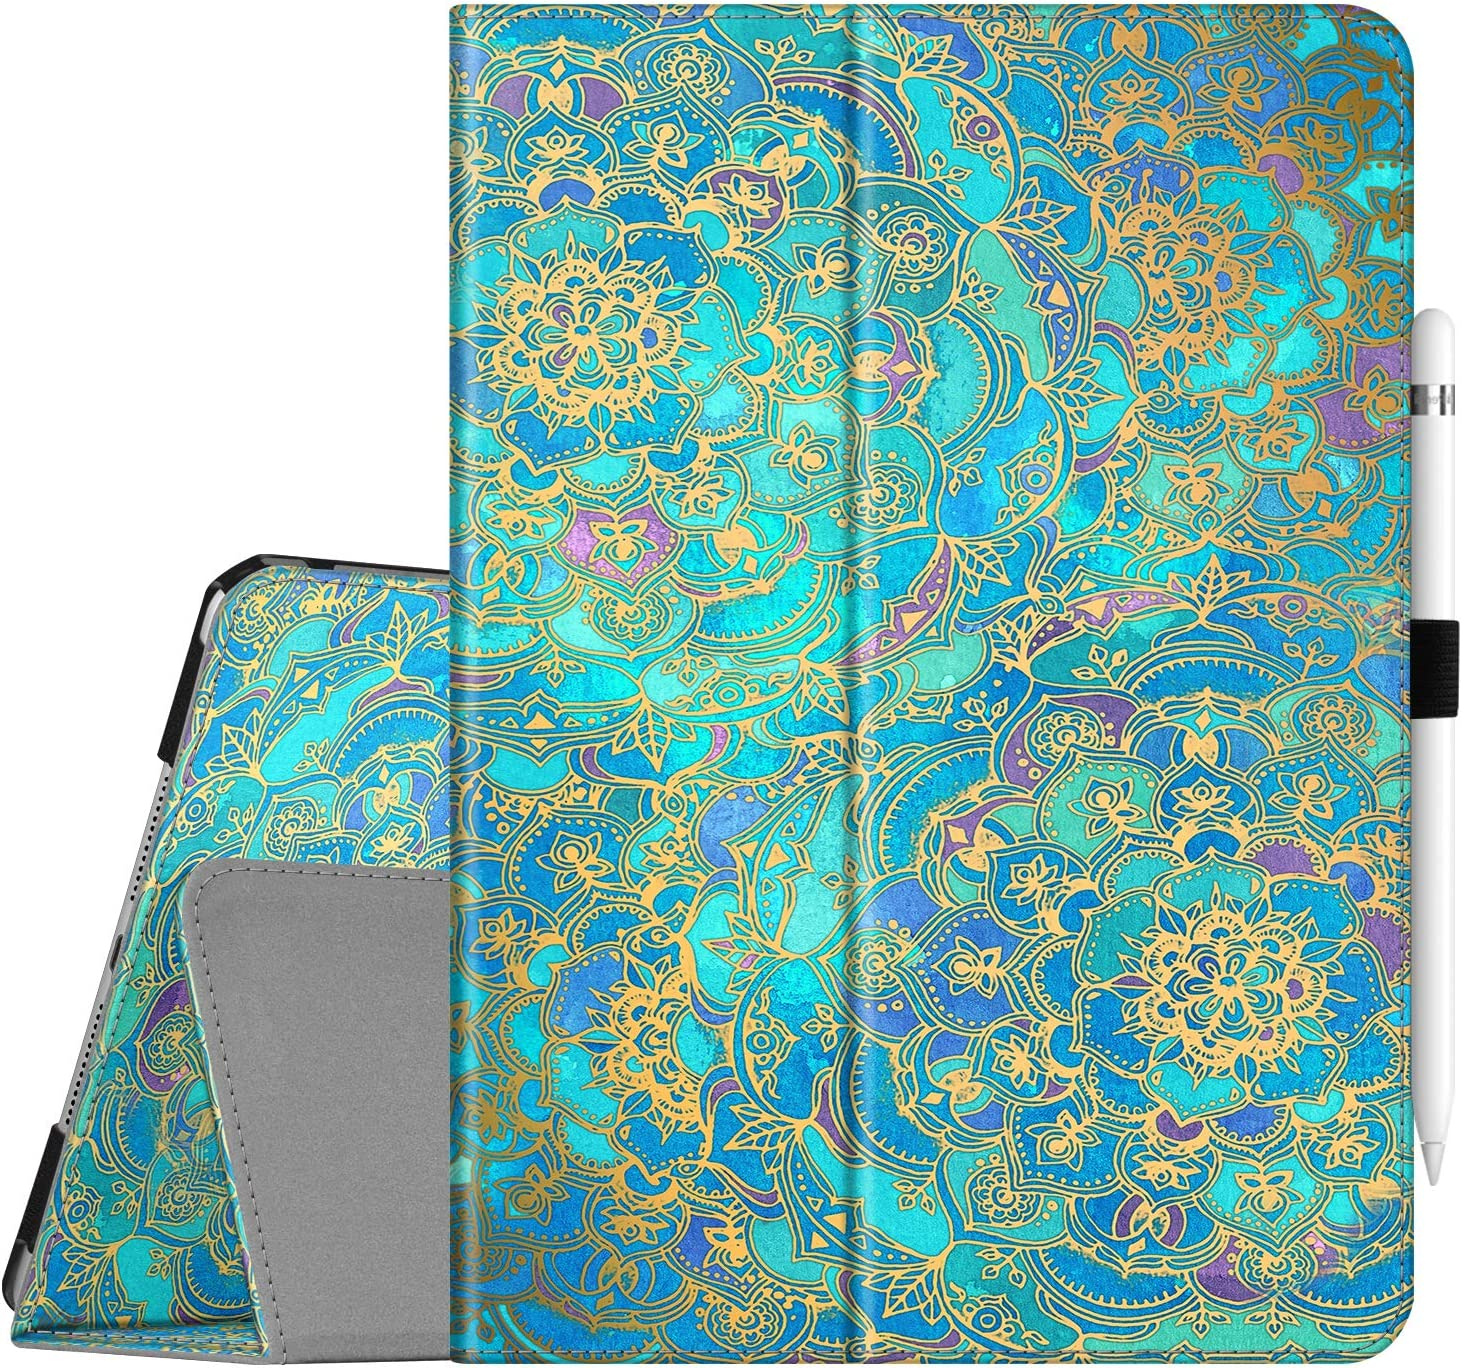 """Fintie Folio Case for New iPad 7th Generation 10.2 Inch 2019 - [Corner Protection] Premium Vegan Leather Smart Stand Back Cover with Pencil Holder, Auto Sleep/Wake for iPad 10.2"""", Shades of Blue"""